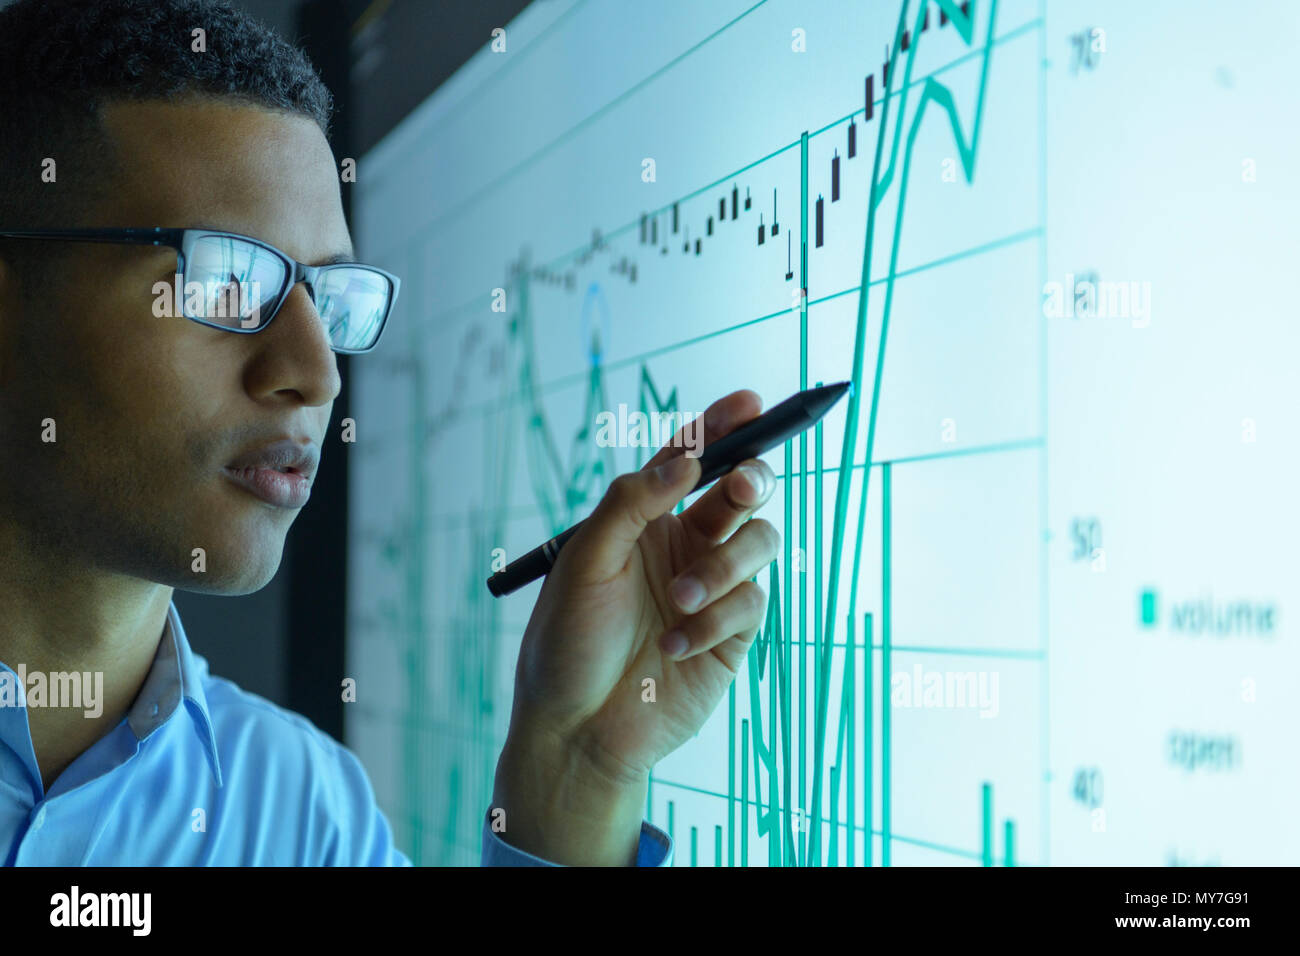 Businessman studying graphs on an interactive screen in business meeting, close up - Stock Image